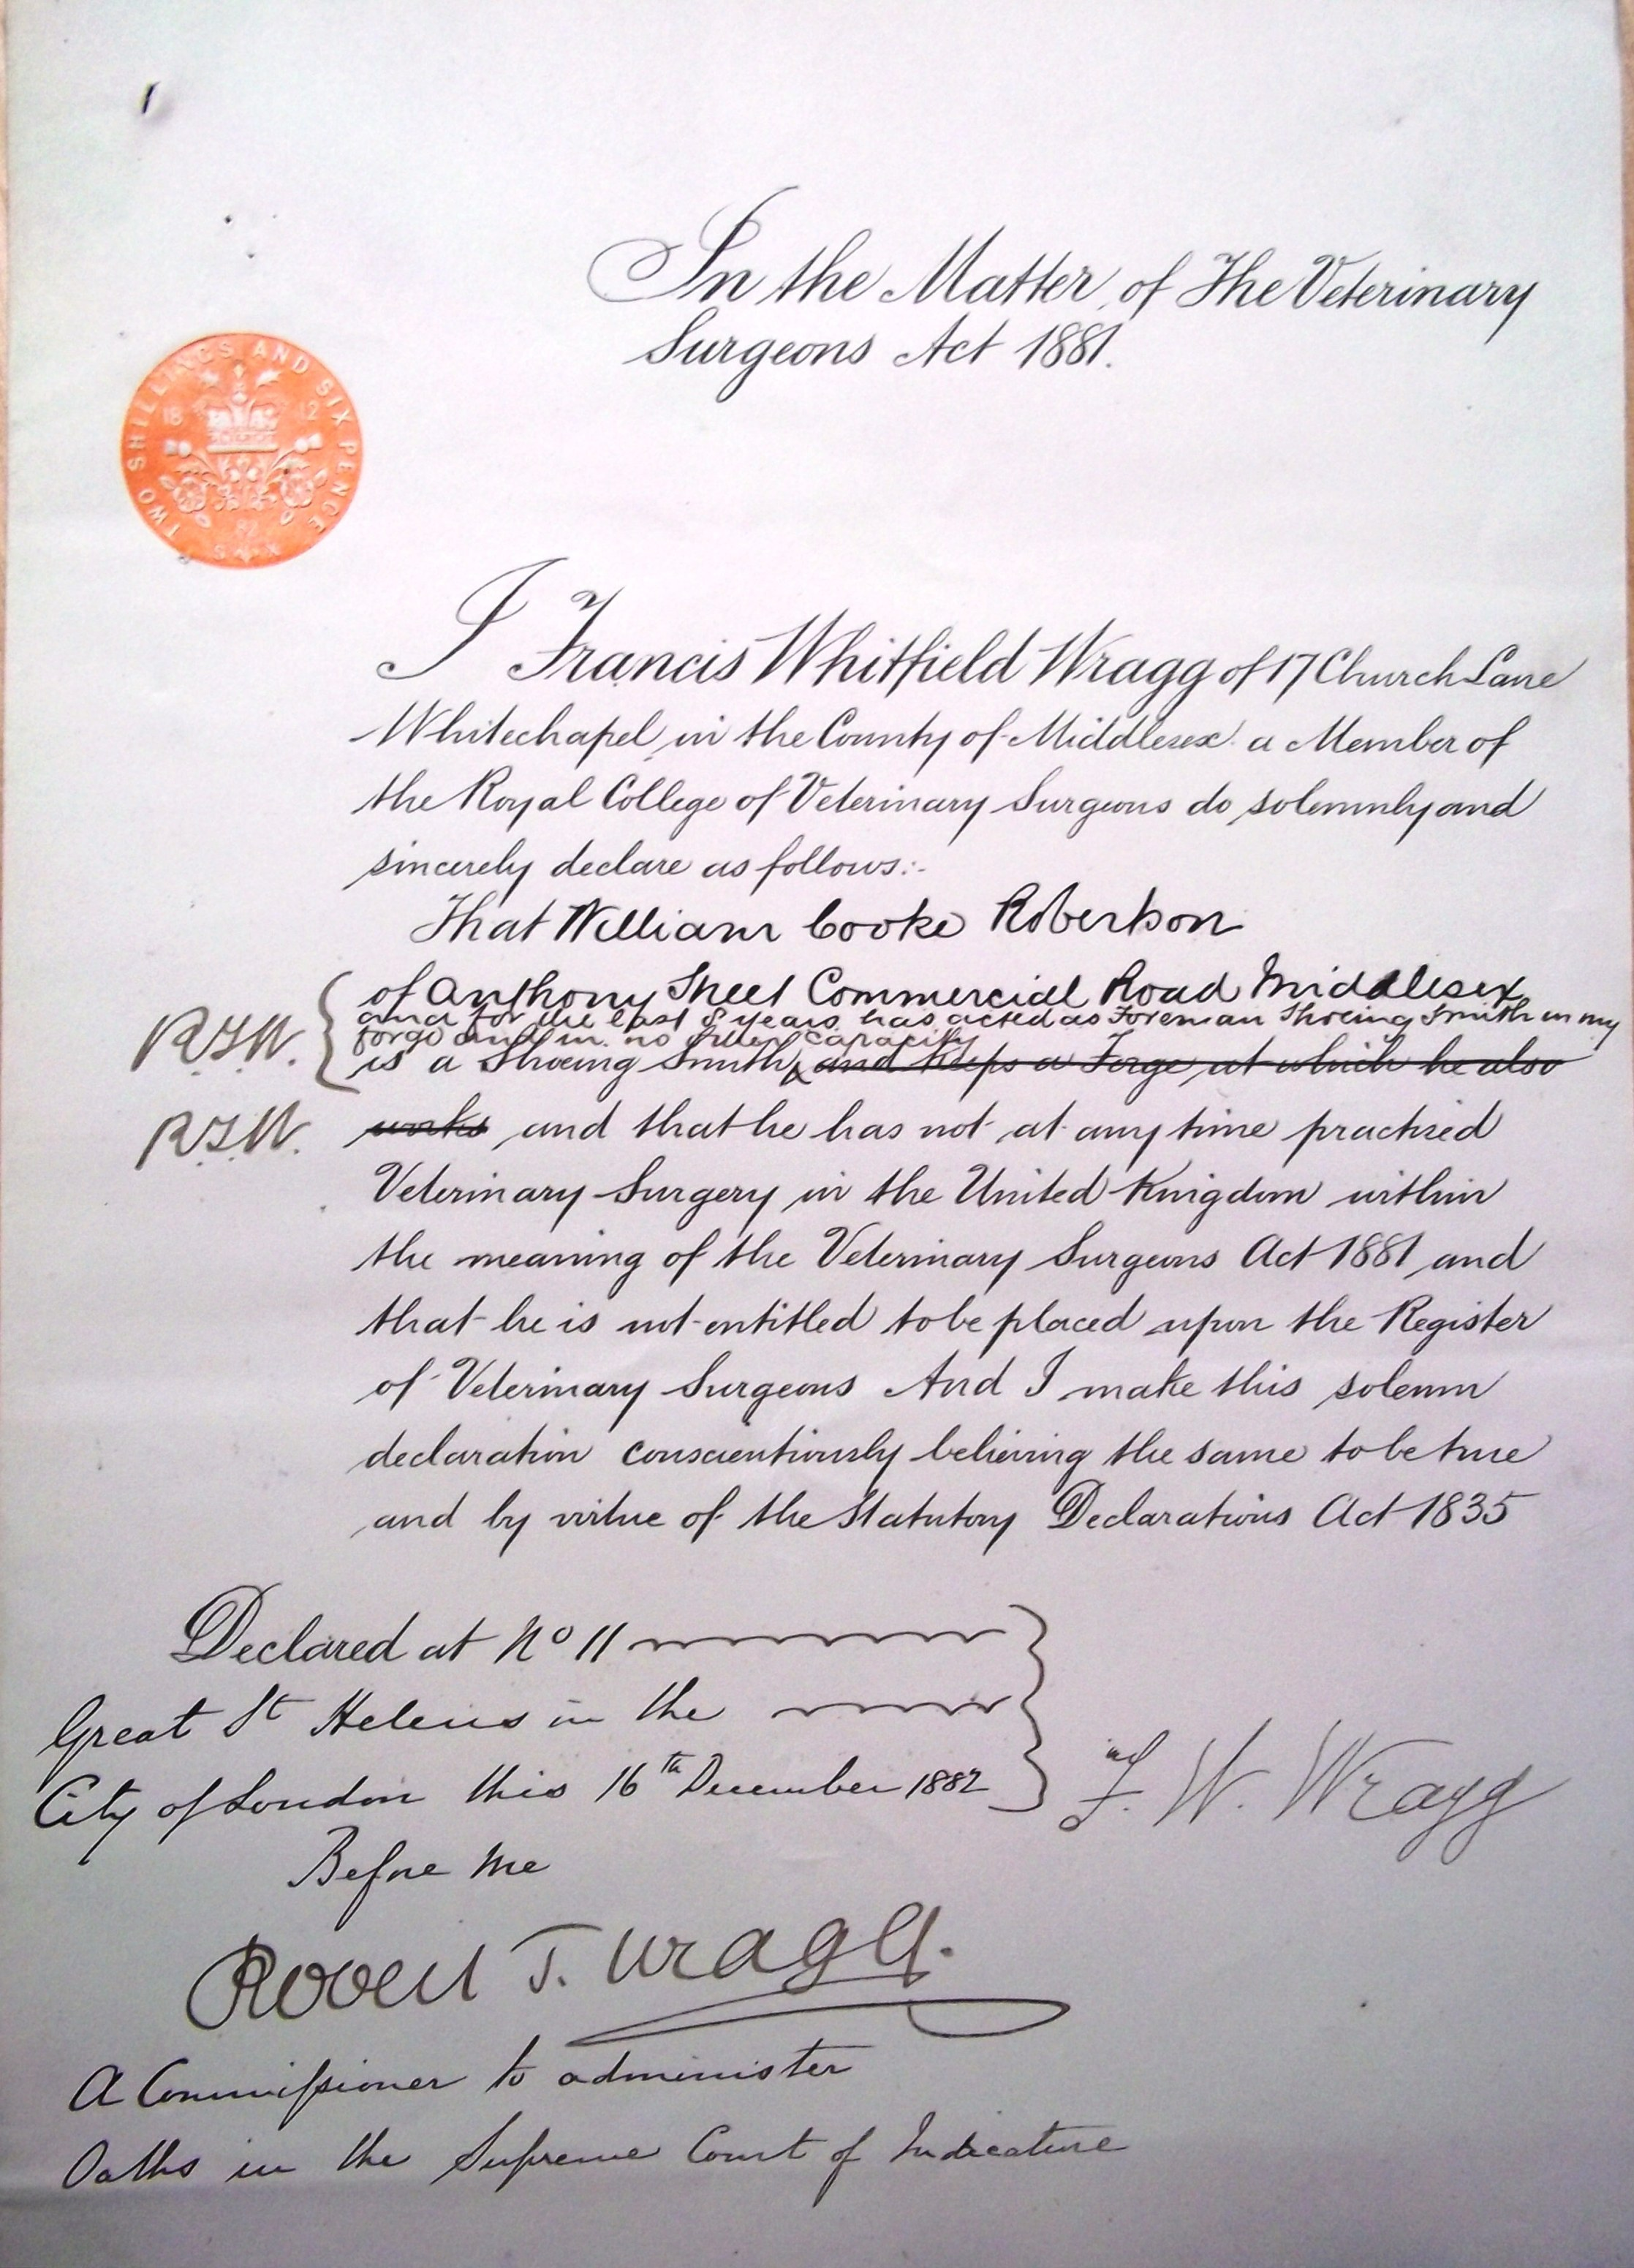 Wragg's letter of protest